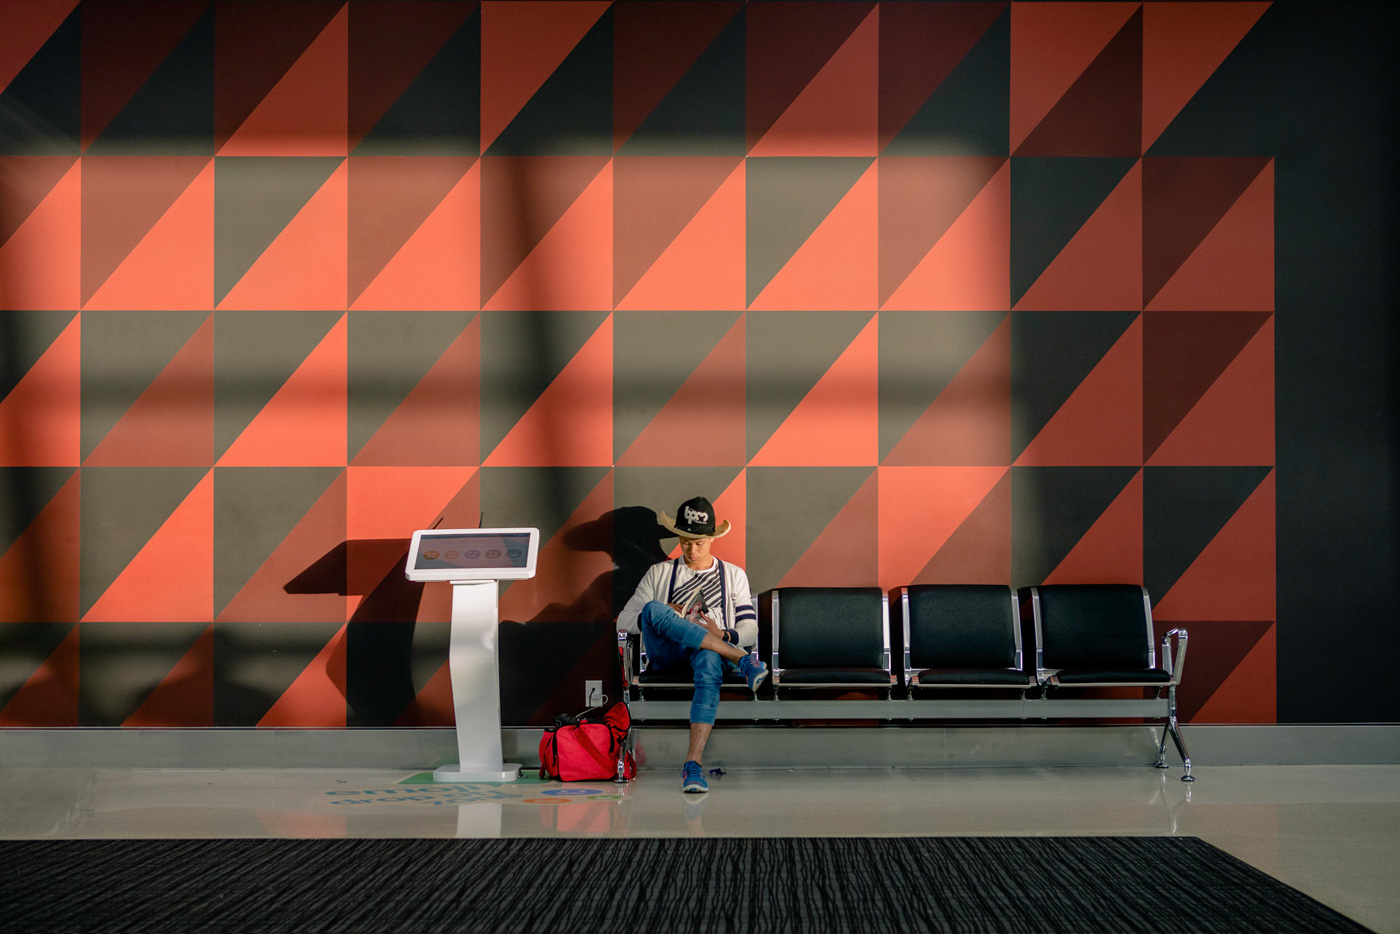 Last Photo of the trip and one of my favorites. Man waits for his plane at Auckland airport